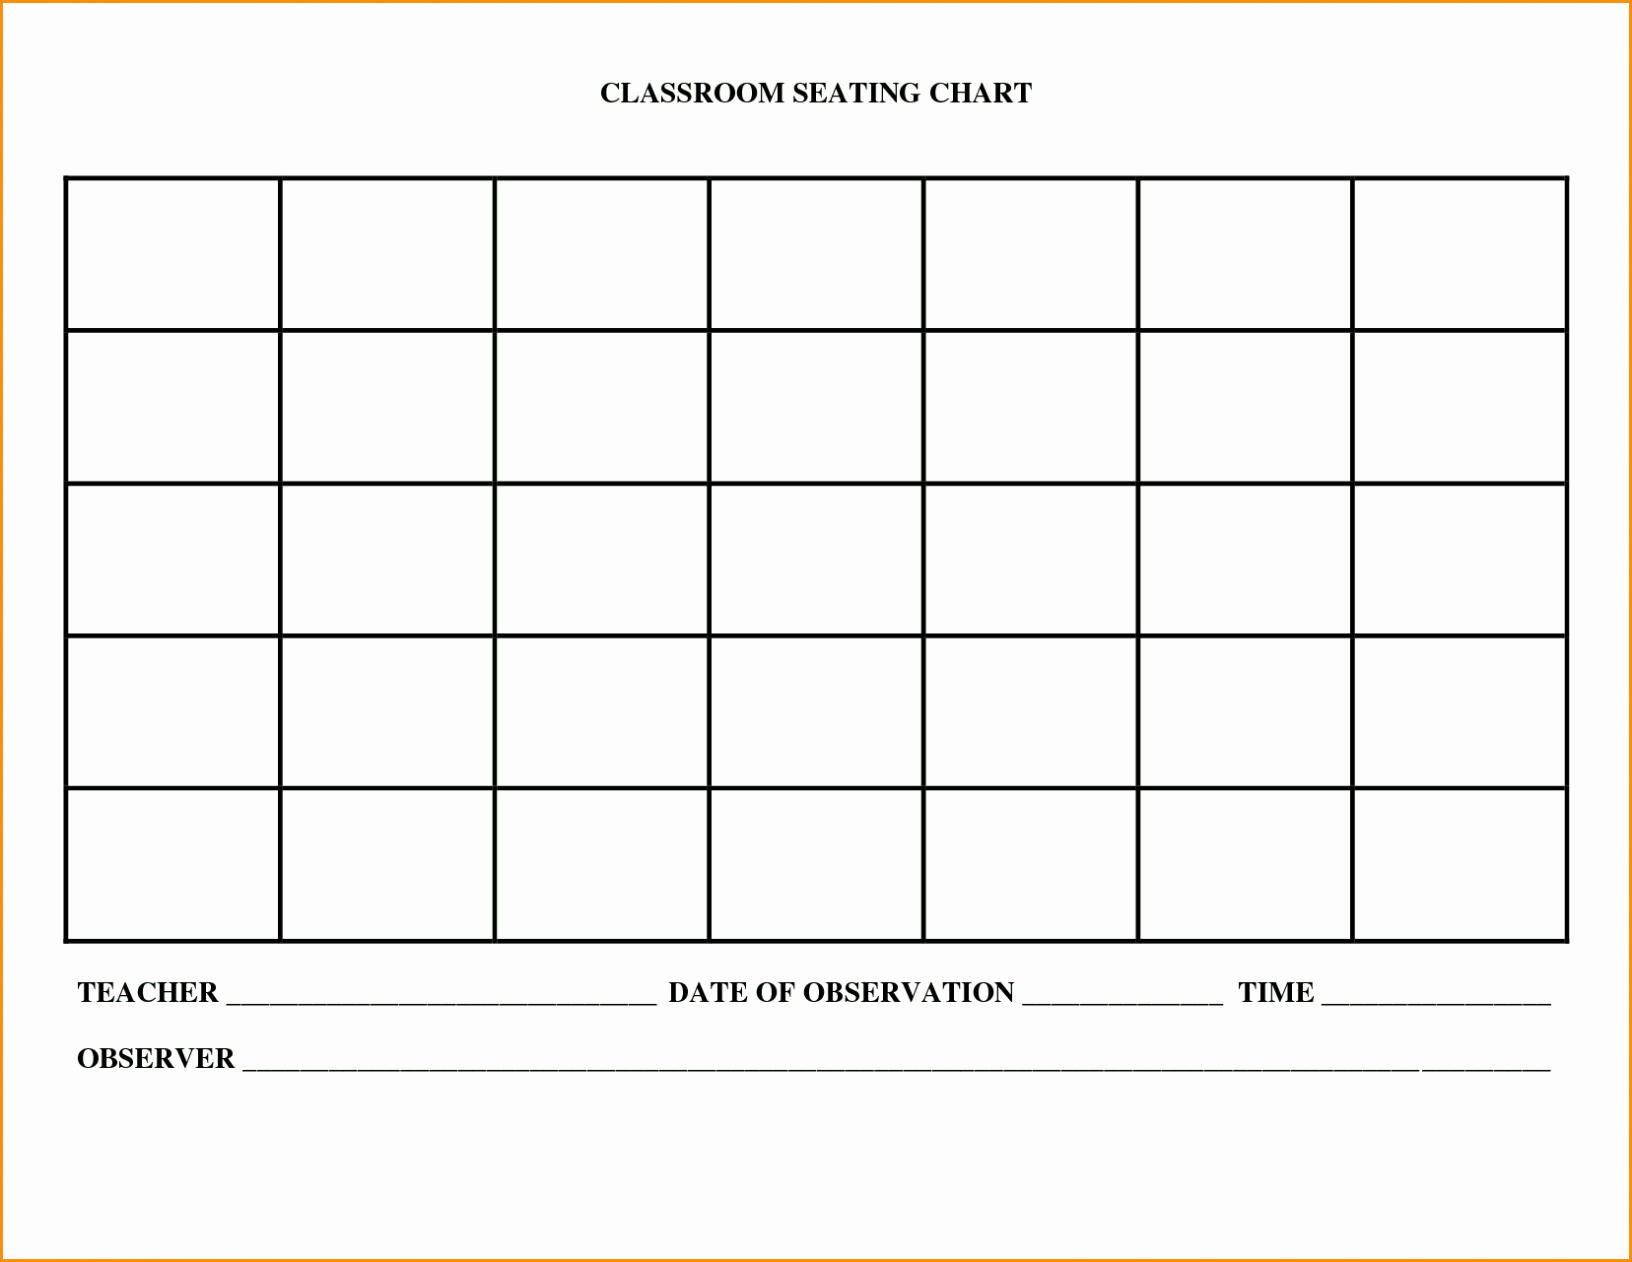 Banquet Seating Chart Template Inspirational Free Table Of Reception & Wedding Seating Chart Template